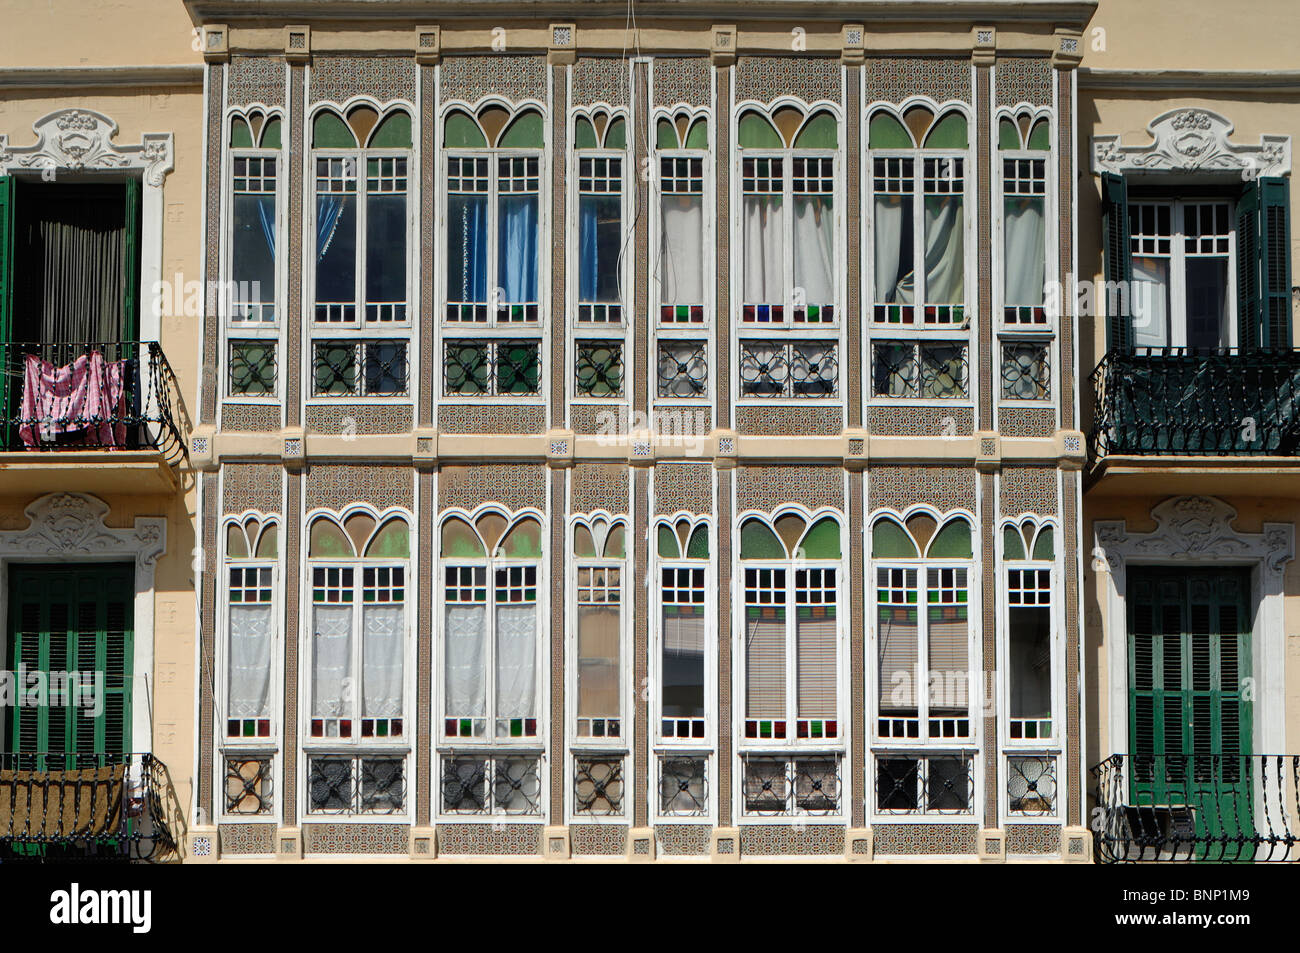 Enclosed Stained Glass Window-Balcony, Melilla, Spain - Stock Image